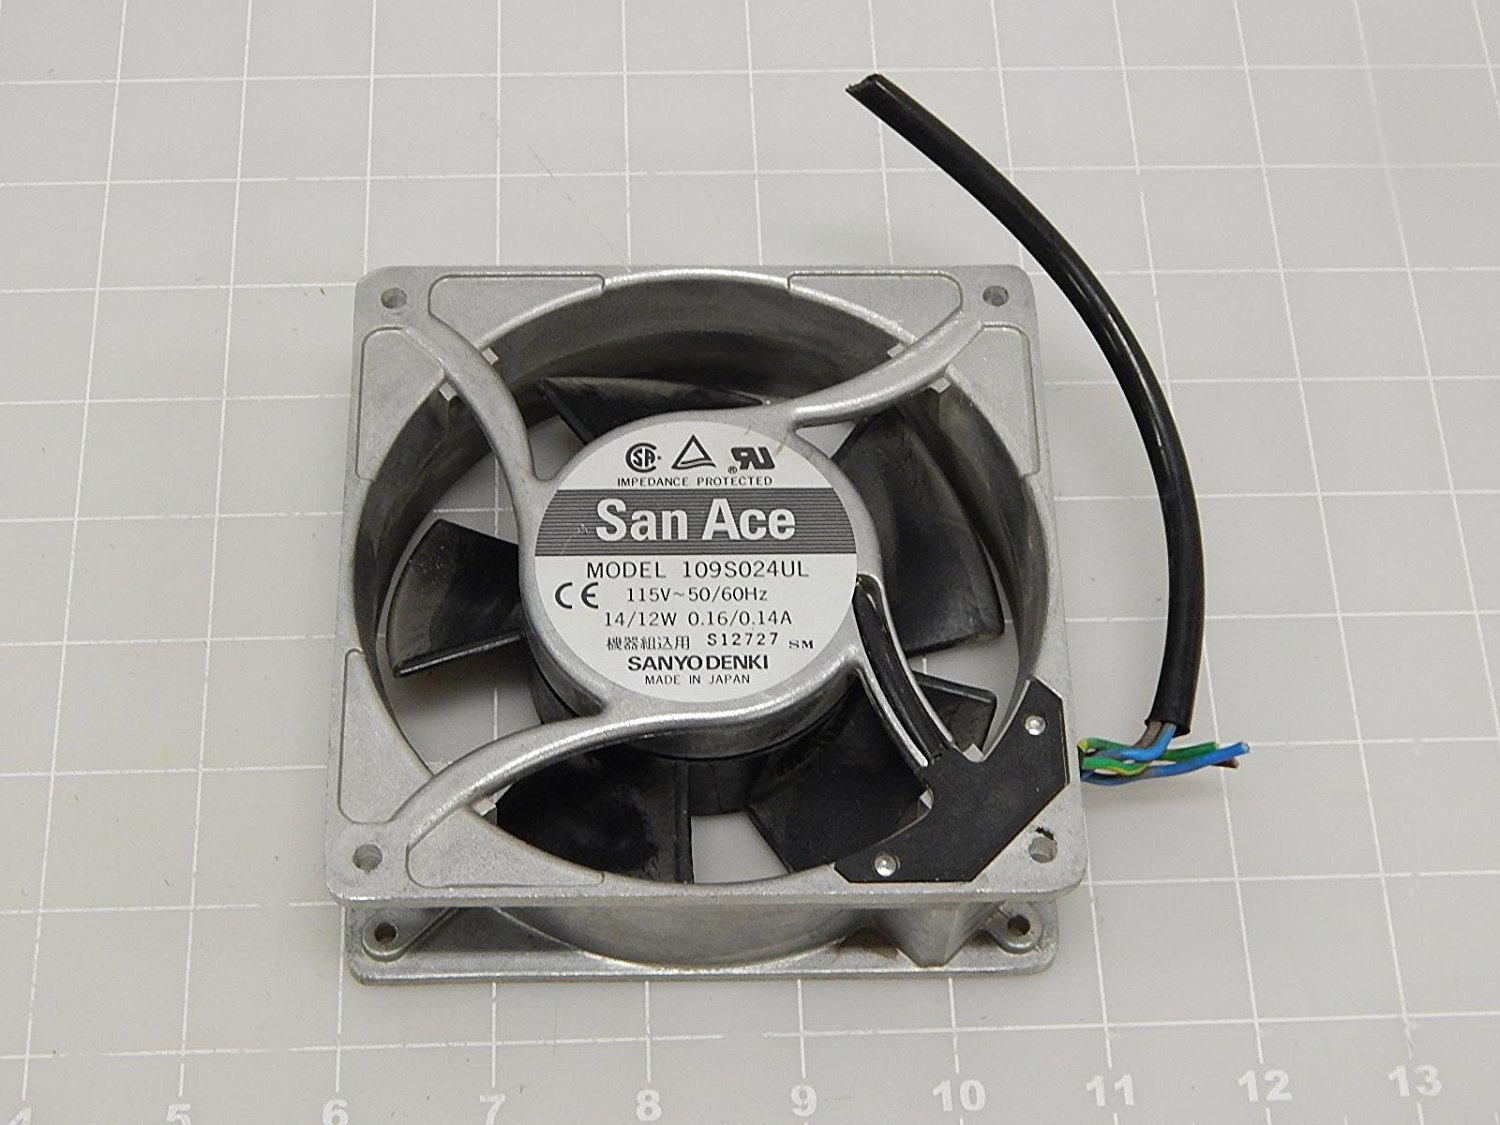 Cheap 160 Mm Case Fan Find Deals On Line At Alibabacom Casing 12cm Alseye Get Quotations Sanyo Denki Sanace Fans 109s024ul Axial 120mm 115vac 160ma